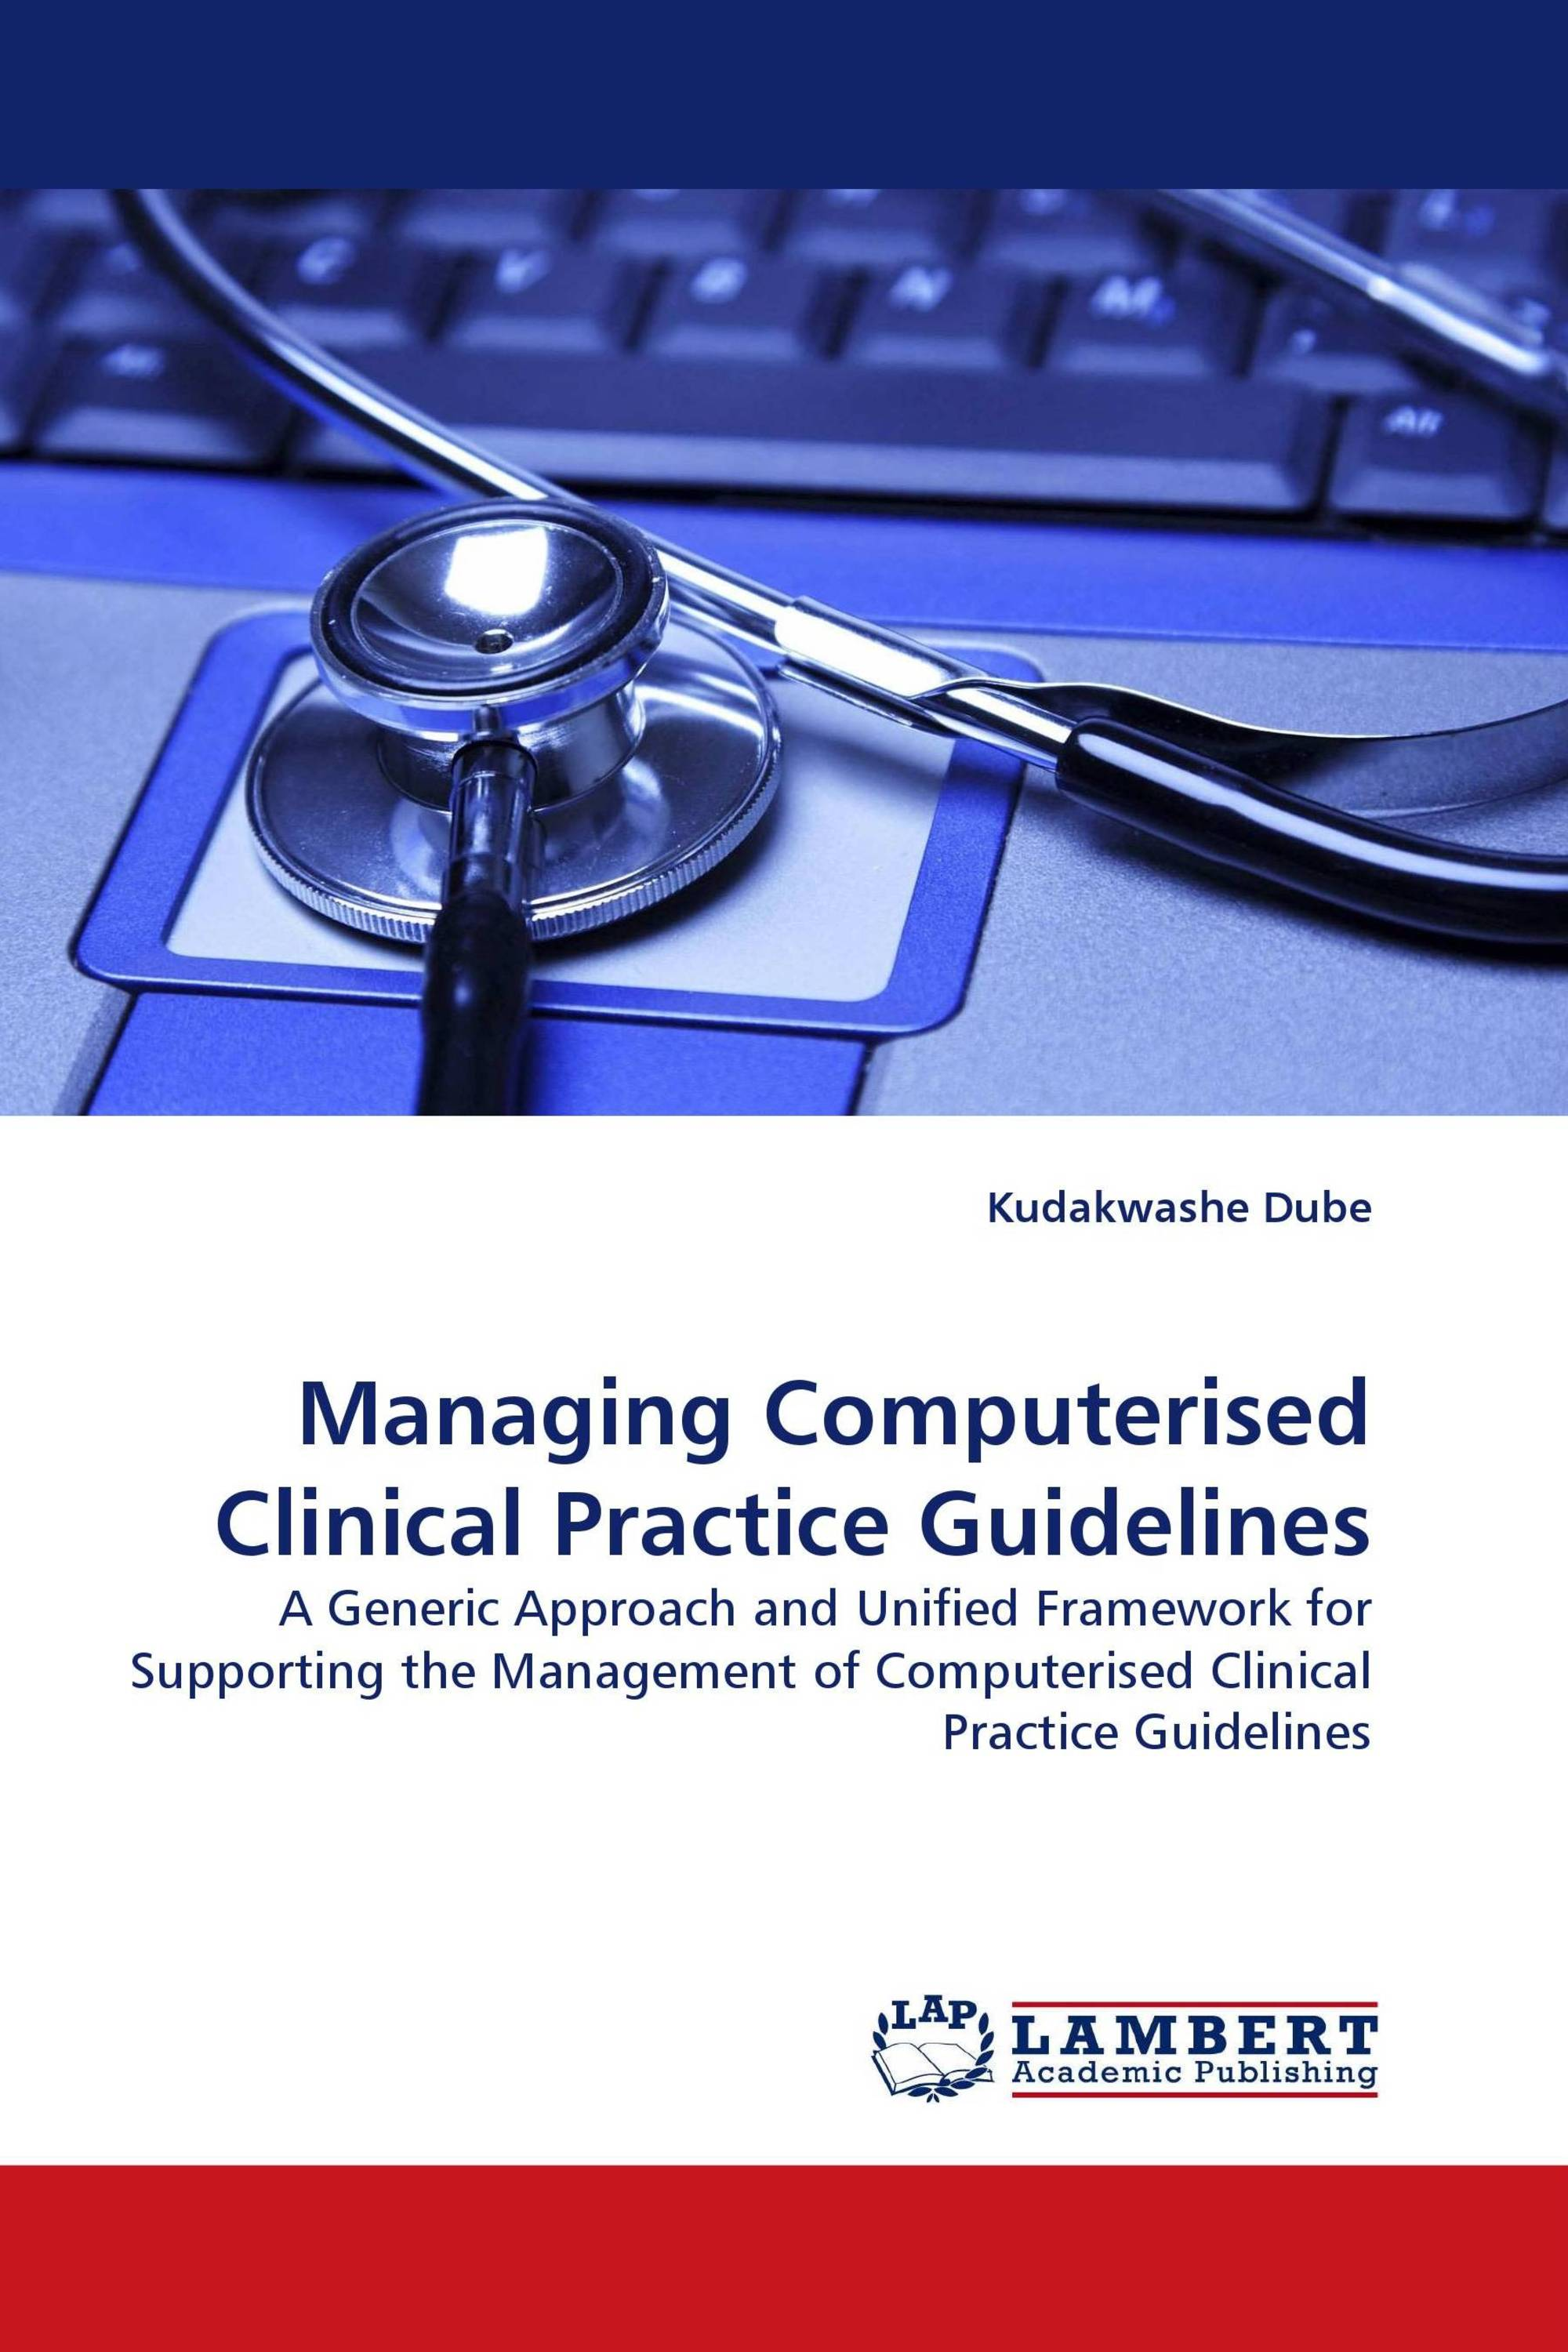 Managing Computerised Clinical Practice Guidelines